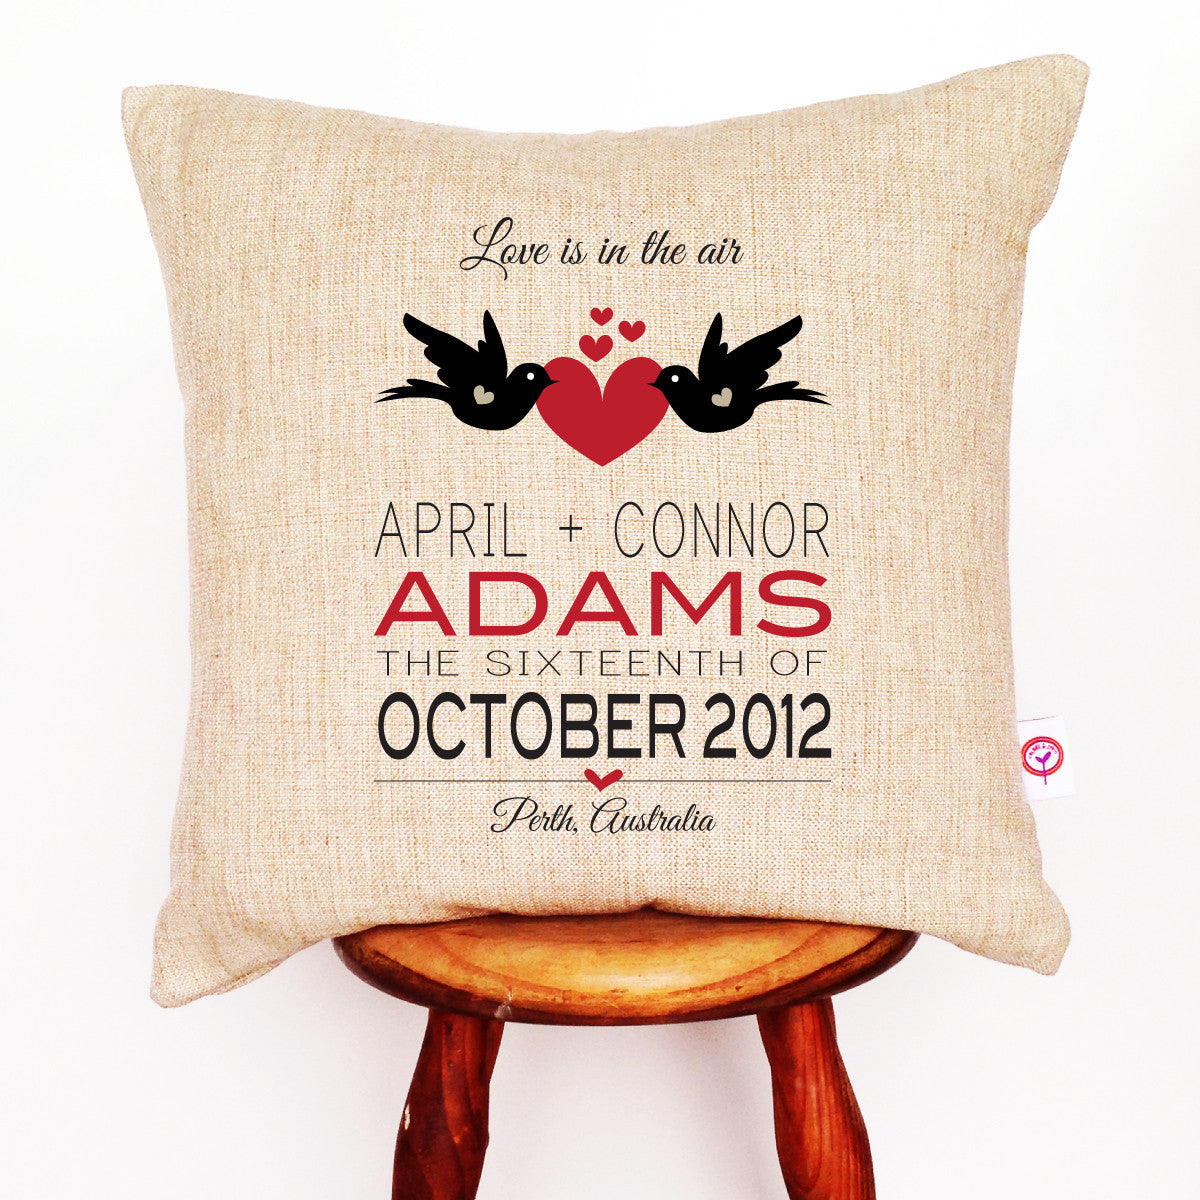 Love Doves (Love cushion).jpg